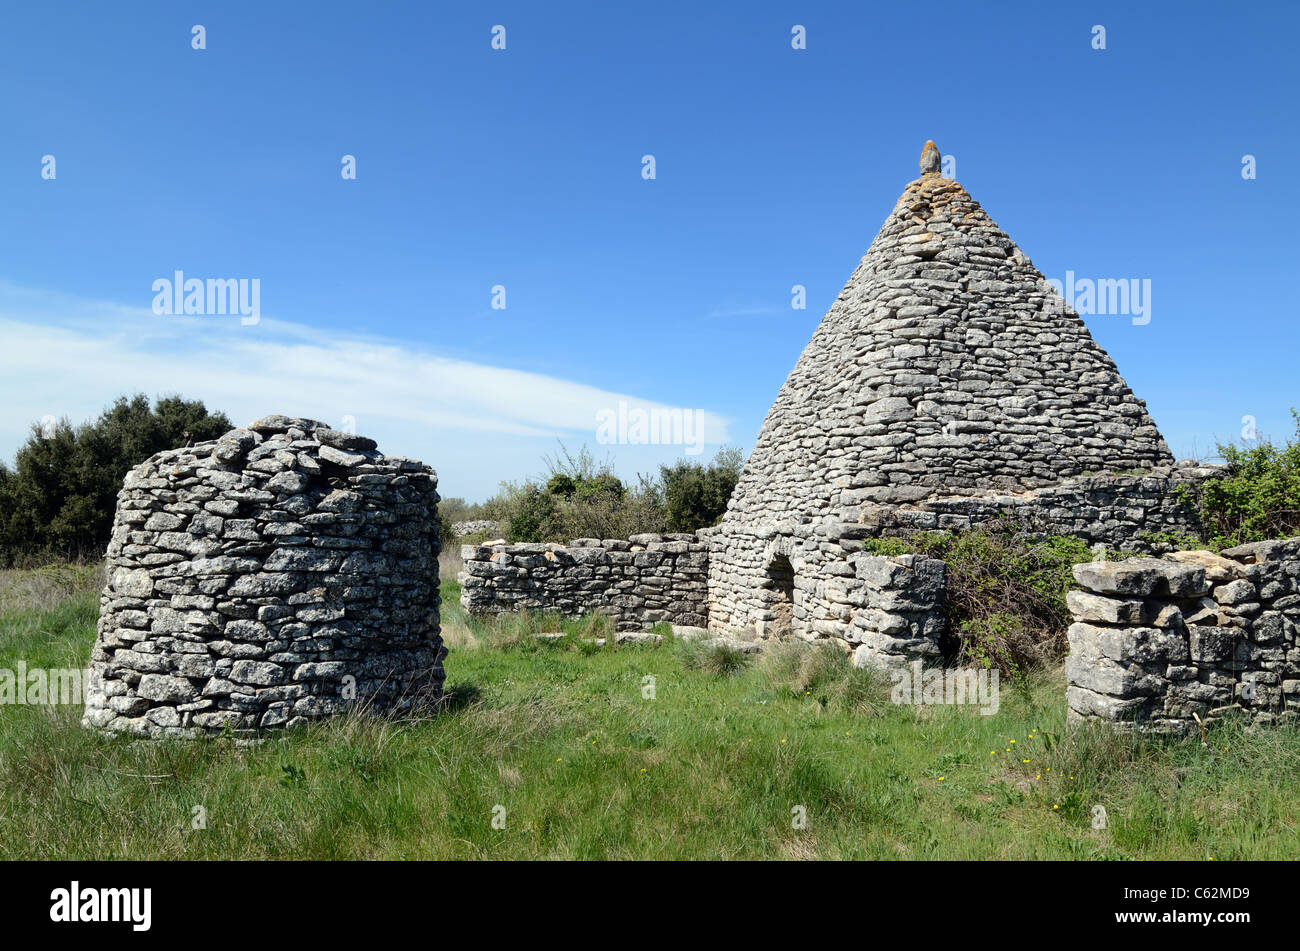 Stone Borie, Dry-Stone Construction or Gallic Hut and Stone Well, near Apt, Luberon, Provence, France - Stock Image